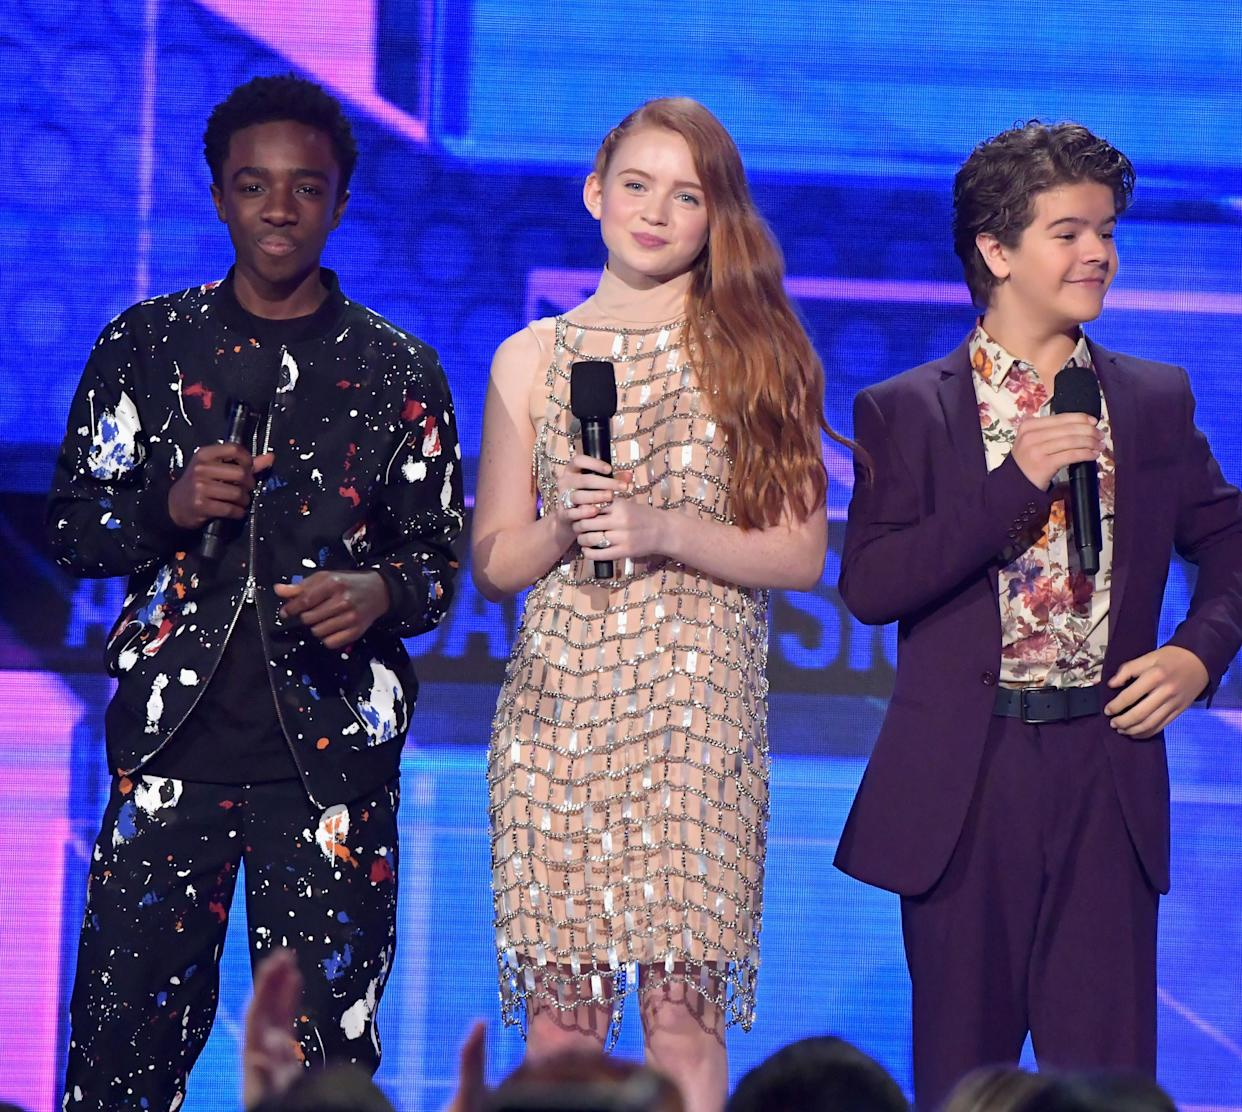 LOS ANGELES, CA - NOVEMBER 19: (L-R) Caleb McLaughlin, Sadie Sink, and Gaten Matarazzo speak onstage during the 2017 American Music Awards at Microsoft Theater on November 19, 2017 in Los Angeles, California. (Photo by Lester Cohen/WireImage)